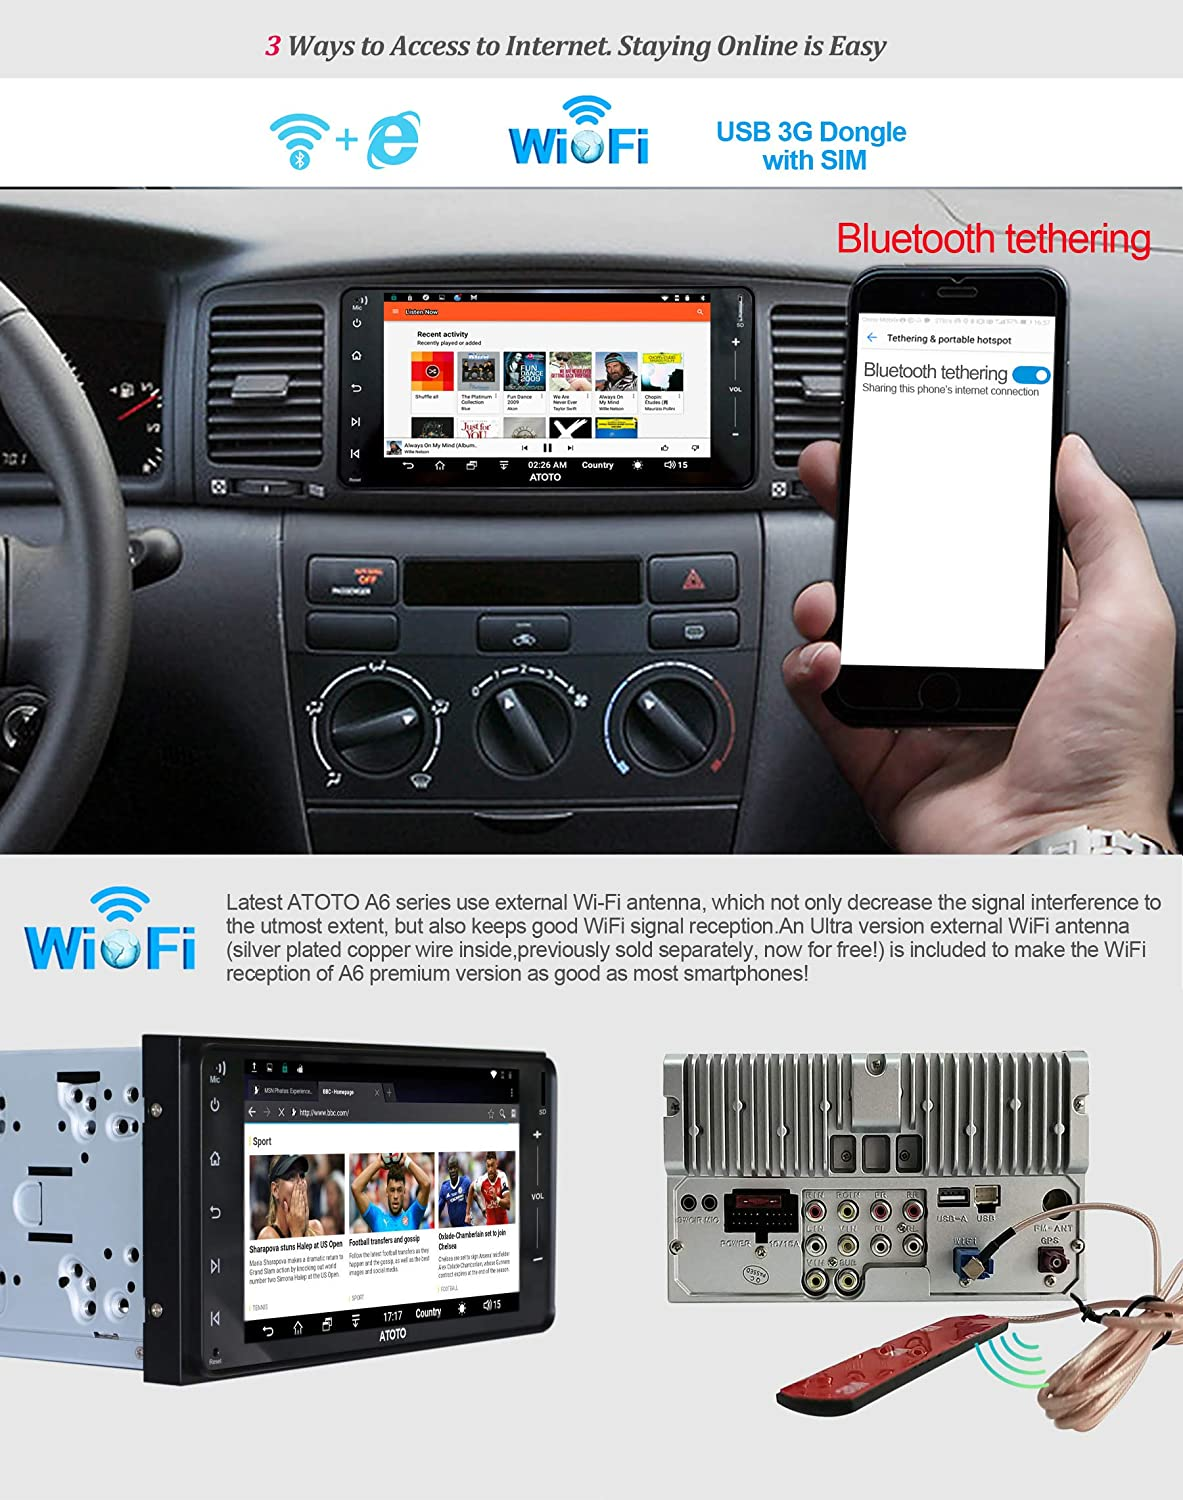 Atoto A6 Android Car Navigation Stereo W 2xbluetooth Subaru Wiring Diagram For Select Toyota 205mm X 104mm Standard A6yty710s 1g 16g Auto Radiowifi Bt